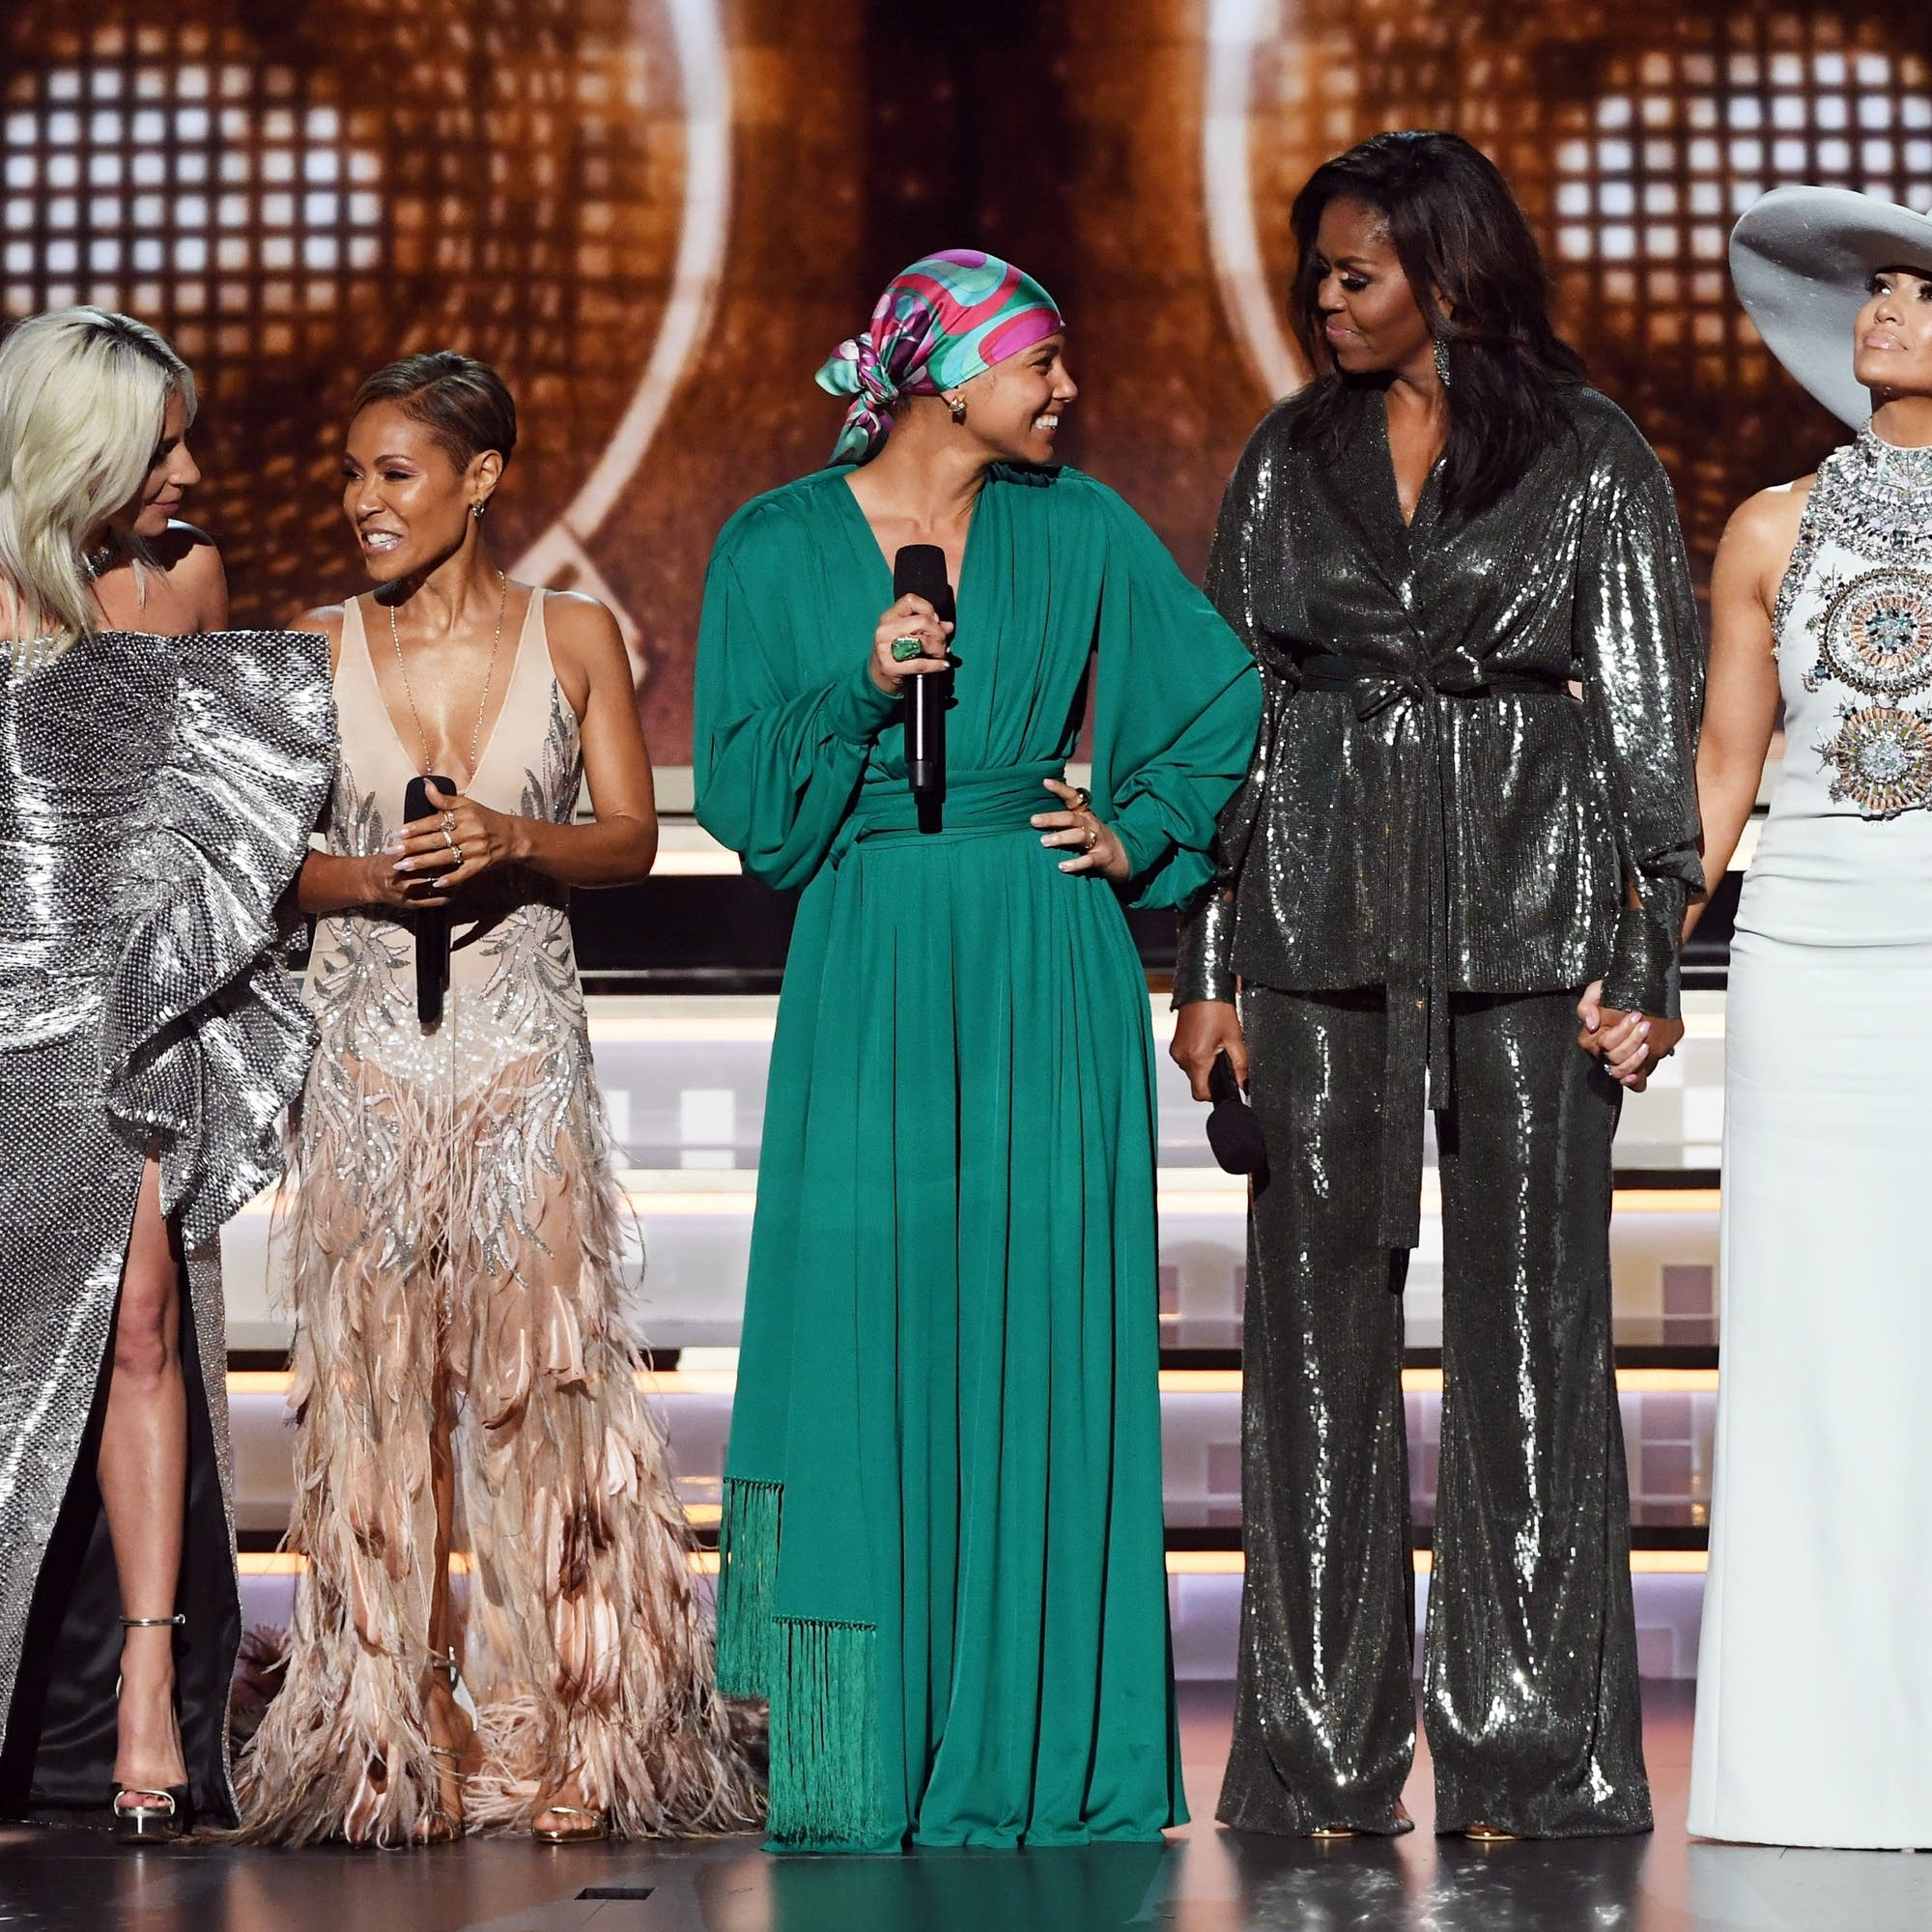 A powerful quintet at the 2019 Grammys.